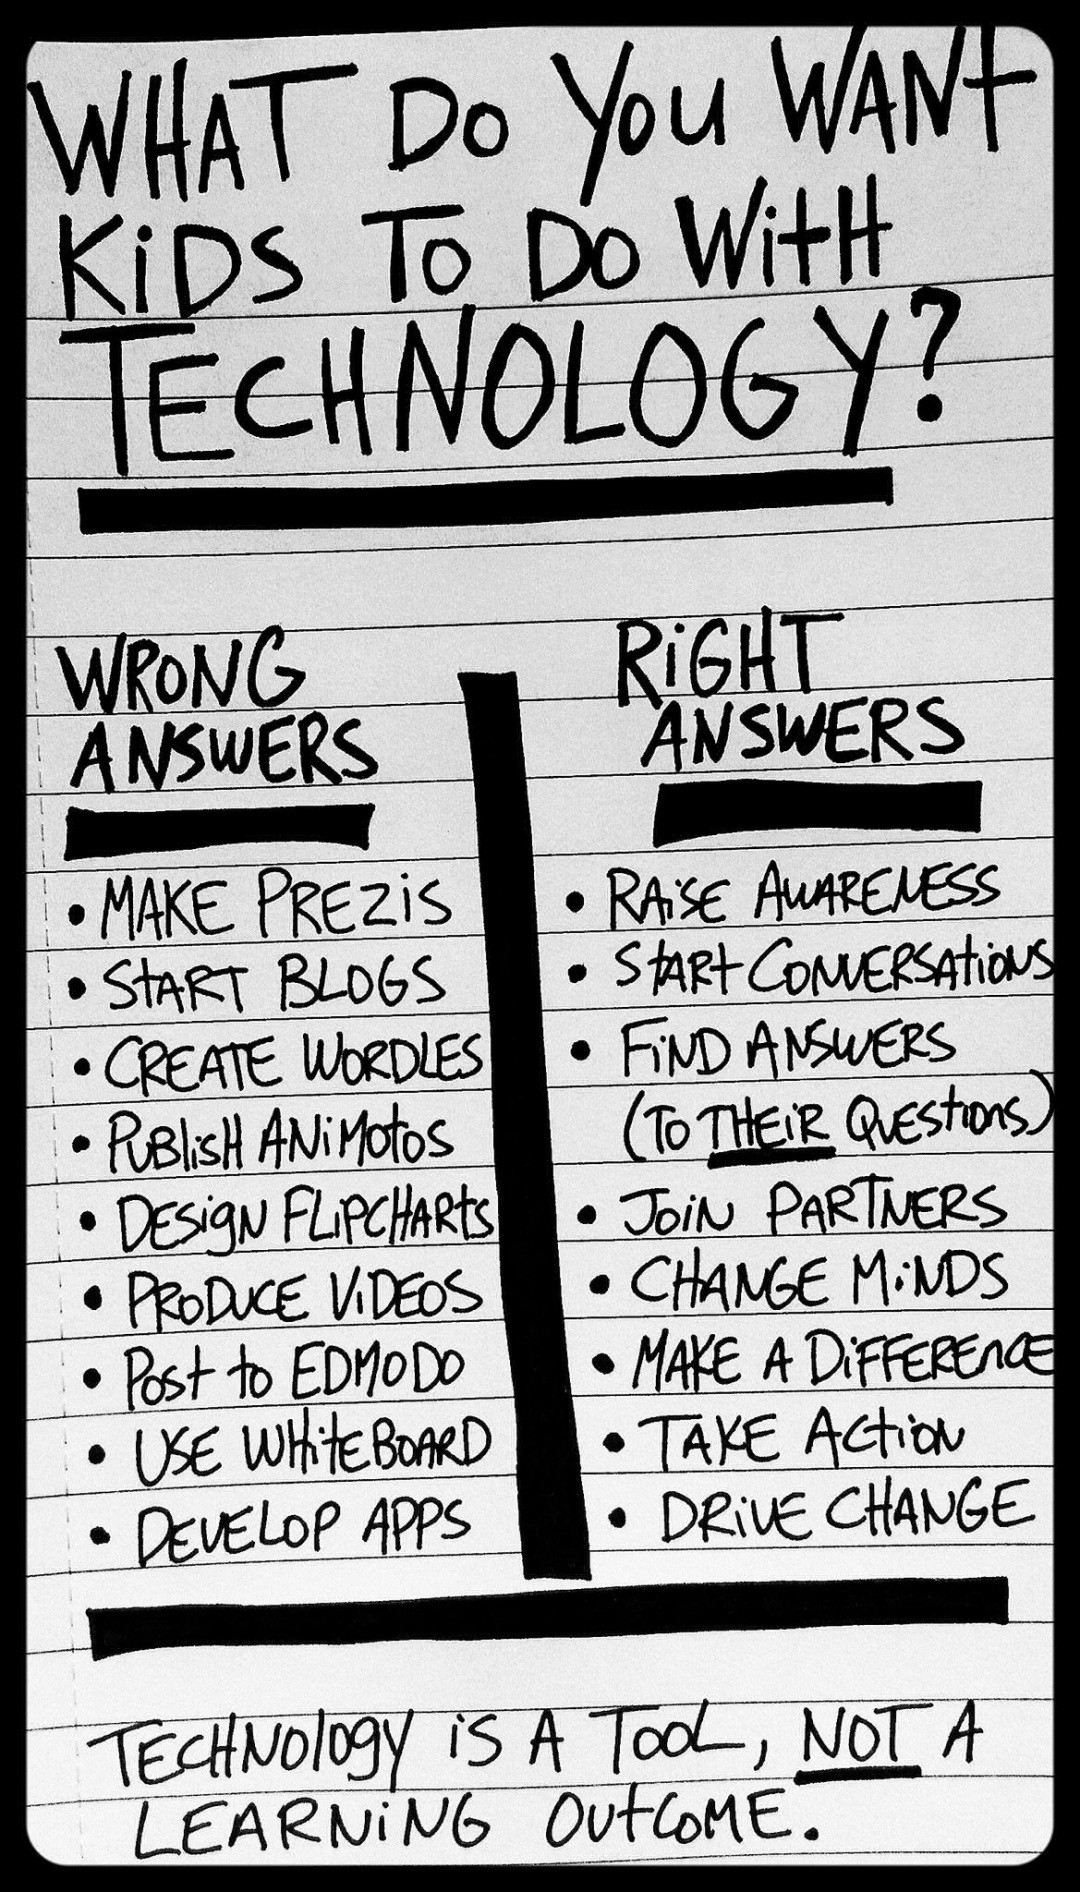 9 Wrong And 8 Right Ways Students Should Use Technology